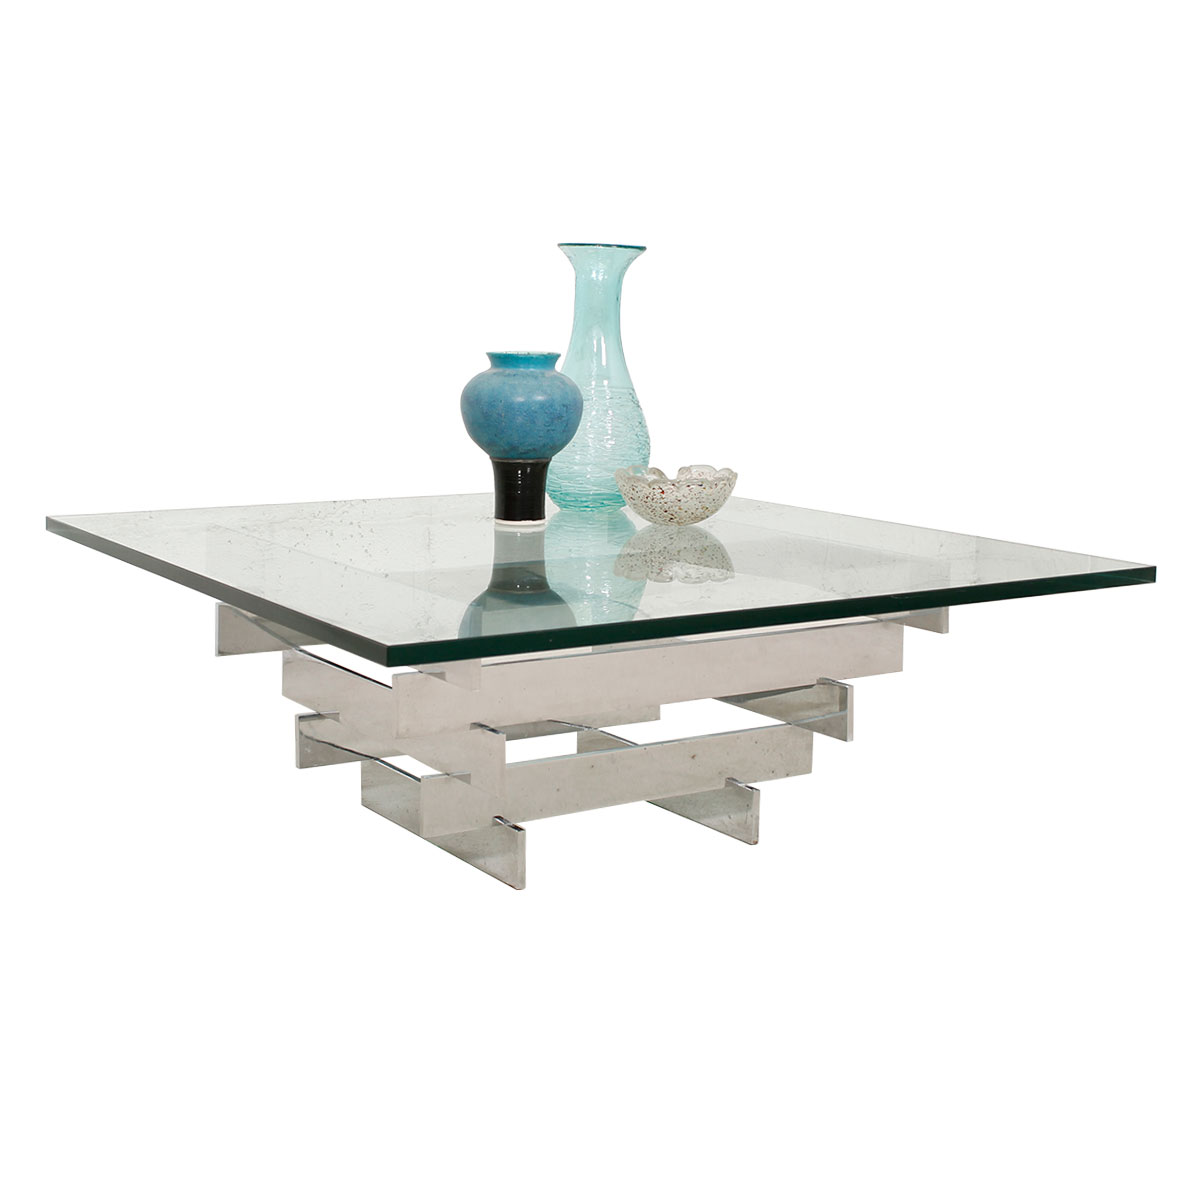 Paul Mayen for Habitat Chrome and Glass Coffee Table